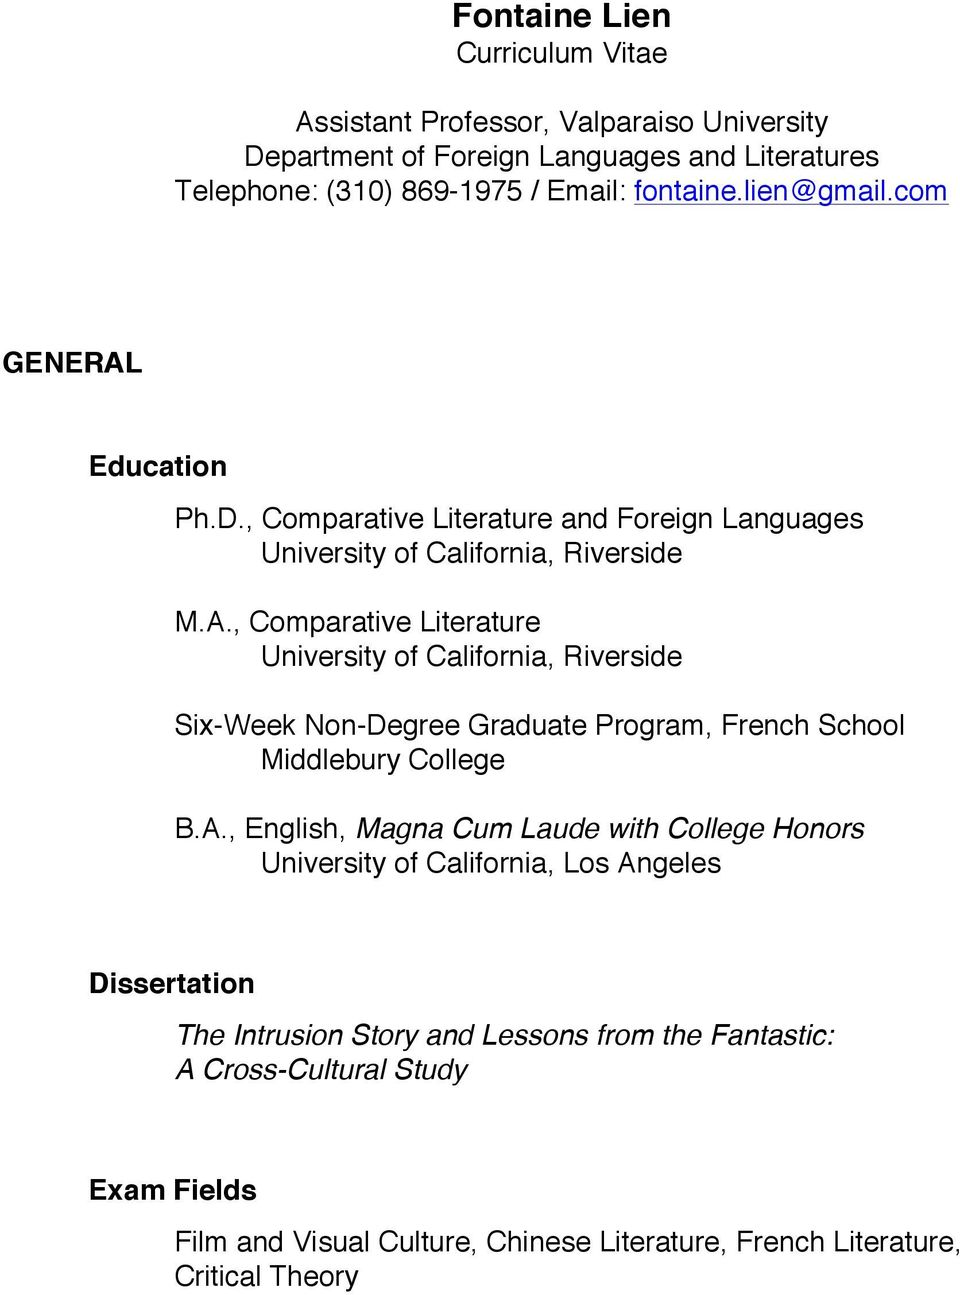 A., English, Magna Cum Laude with College Honors University of California, Los Angeles Dissertation The Intrusion Story and Lessons from the Fantastic: A